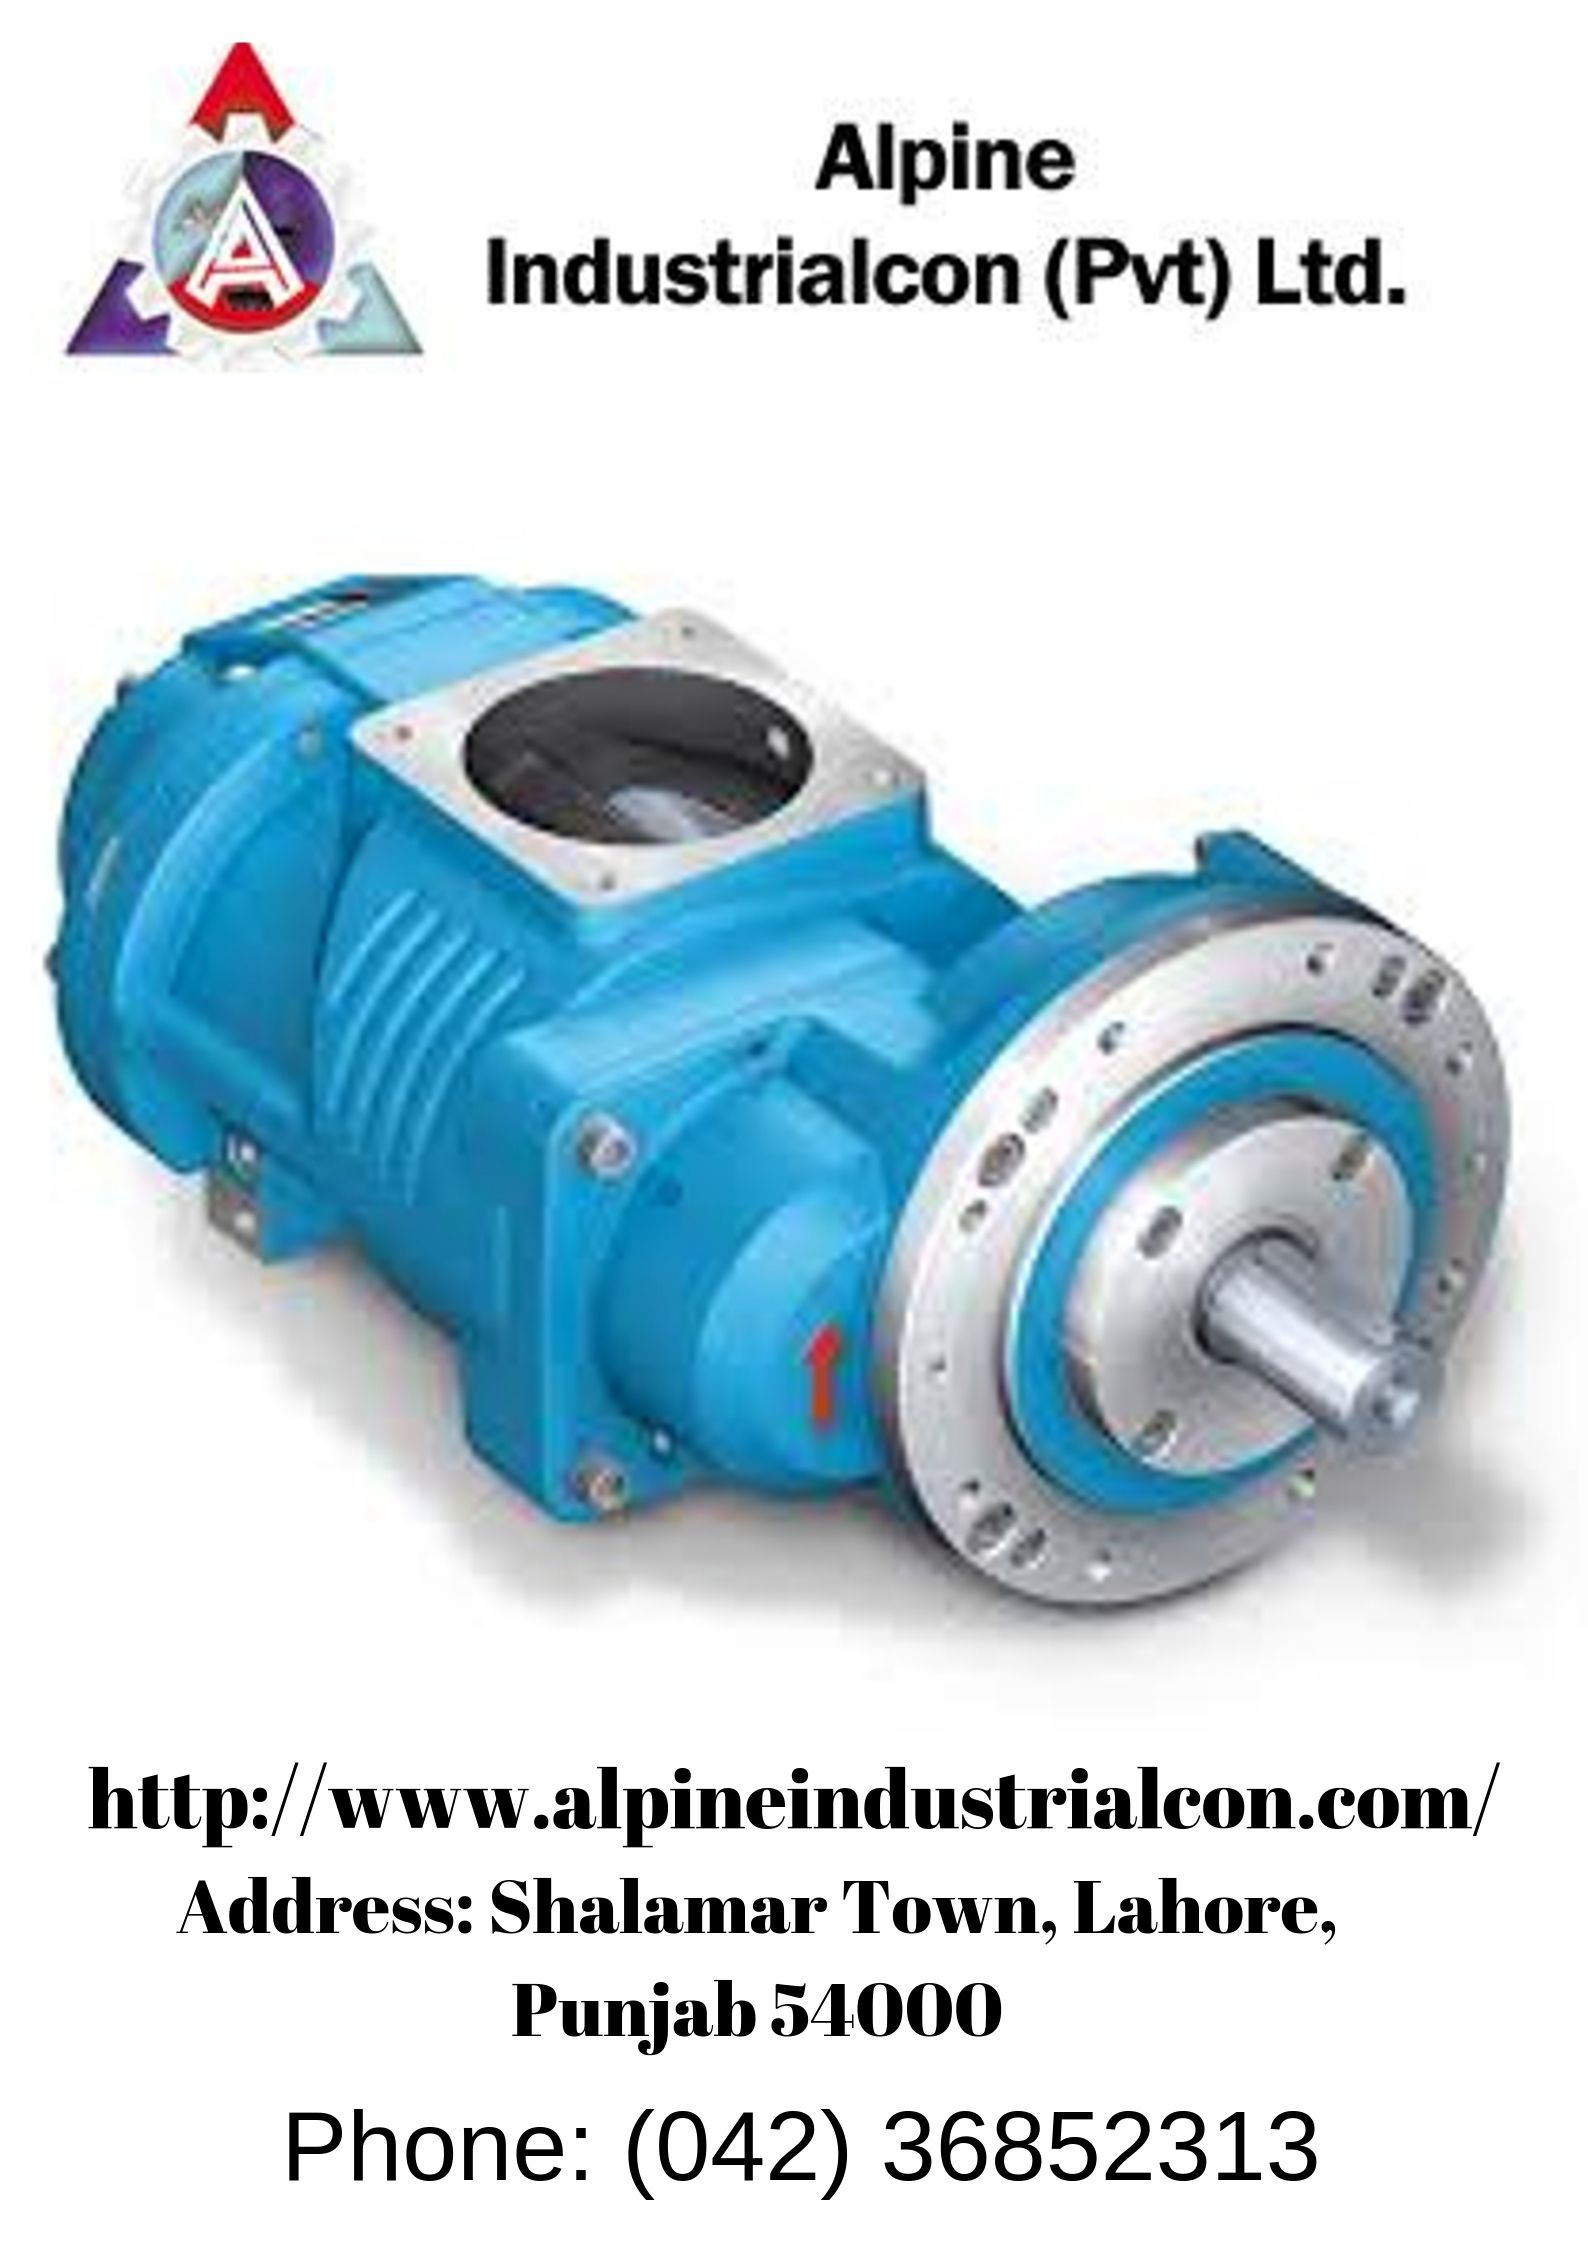 Alpine Compressors provides High pressure compressor for